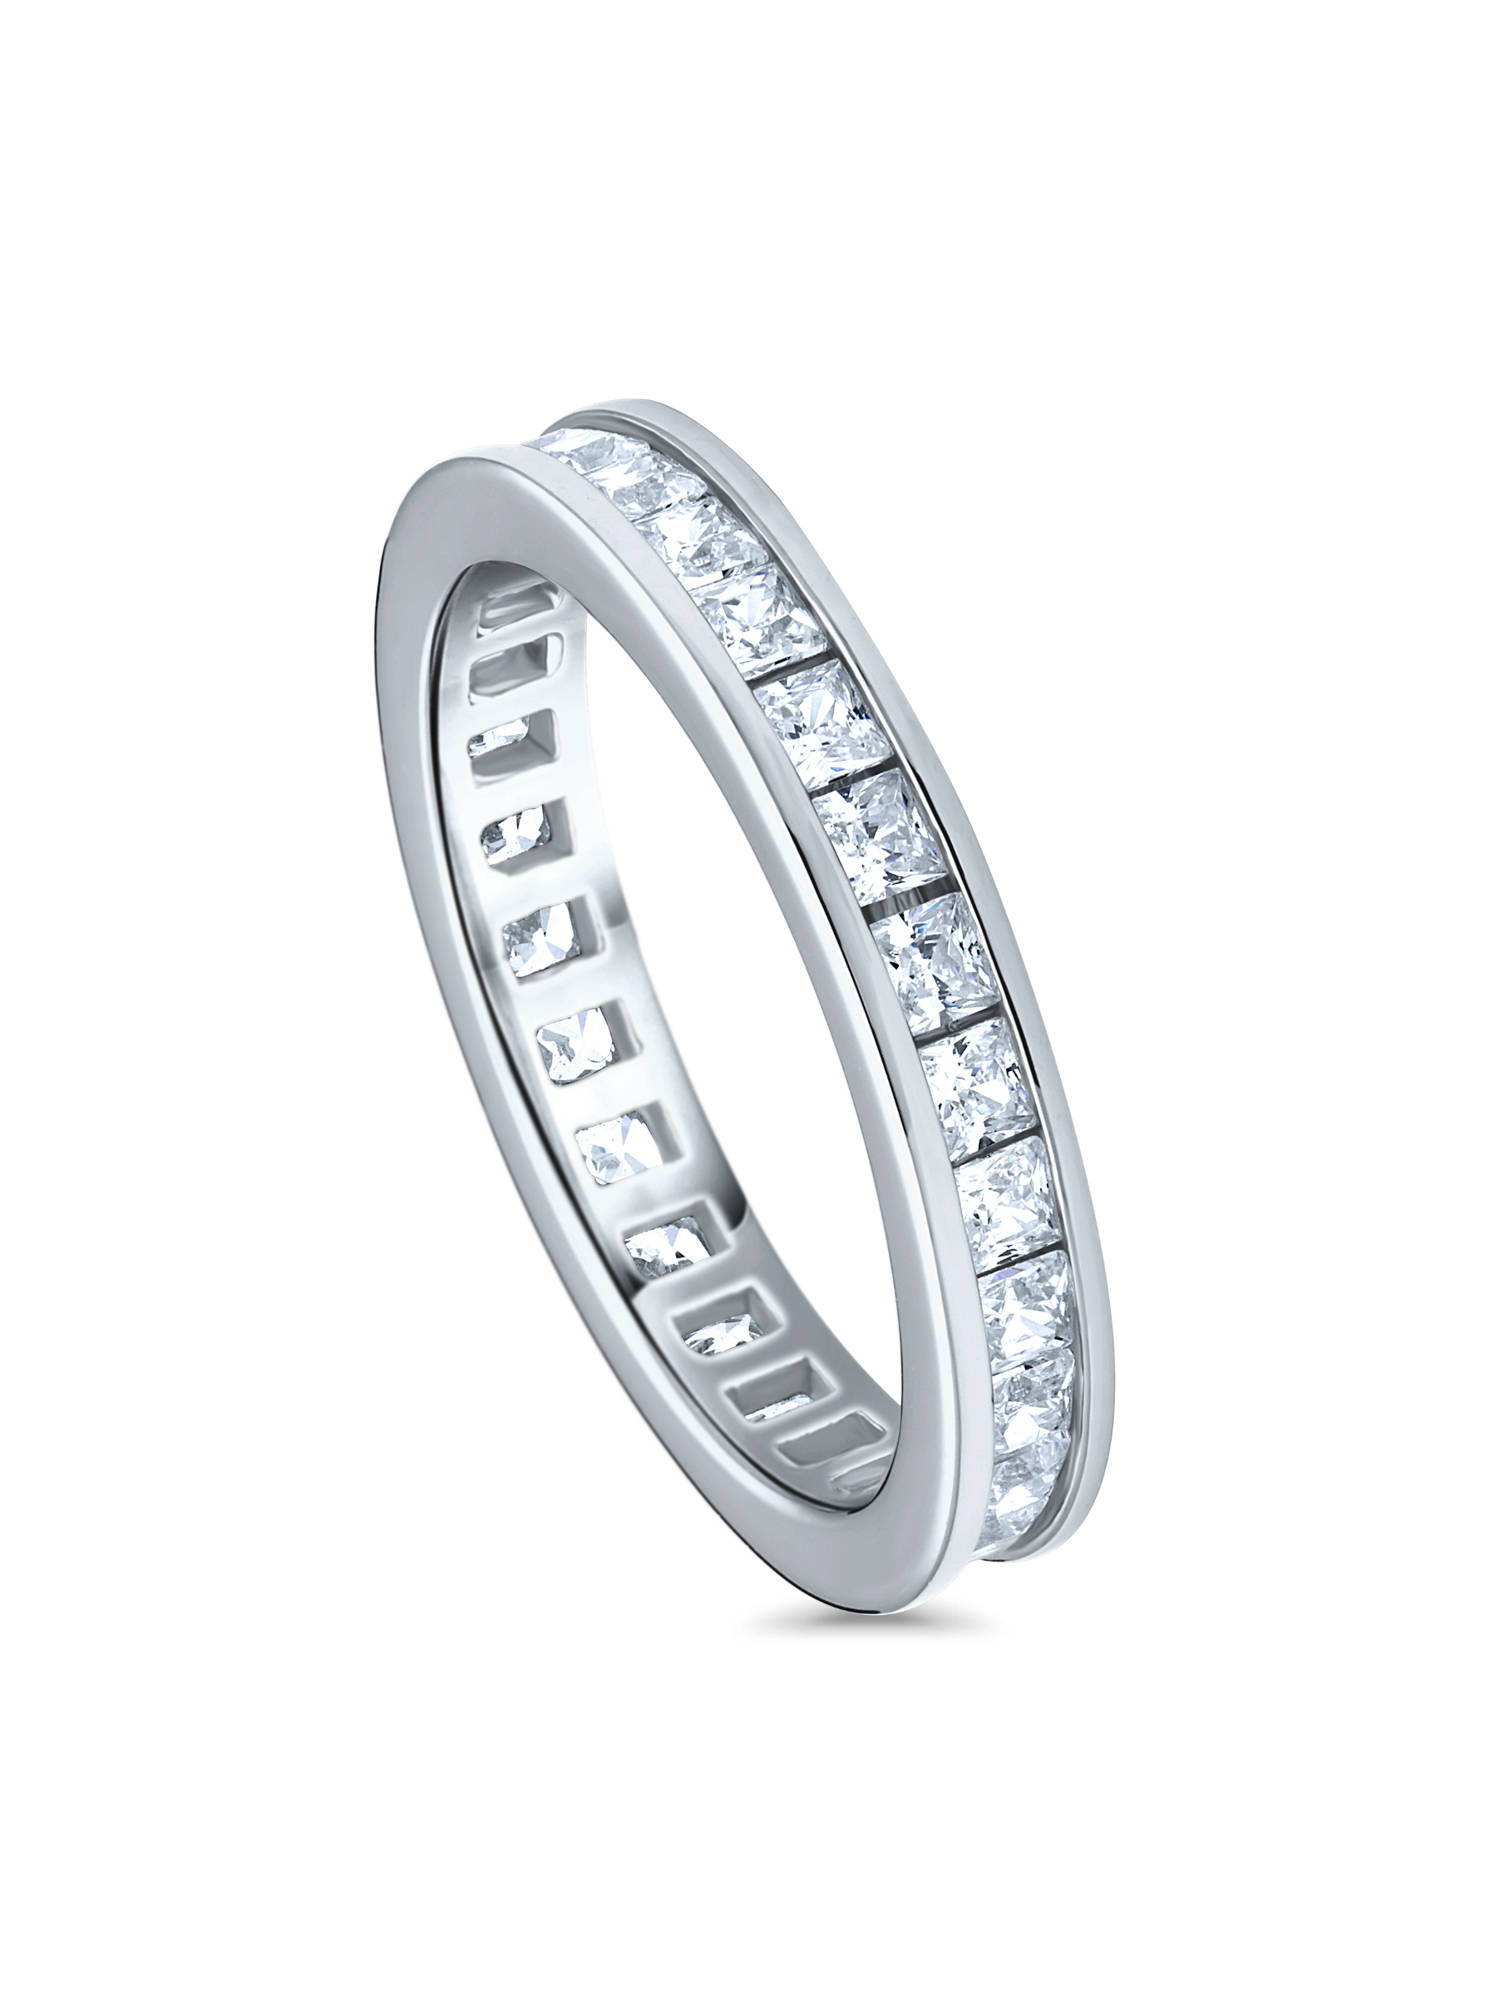 fa722164f07 BERRICLE Rhodium Plated Sterling Silver Channel Set Cubic Zirconia CZ  Eternity Band Ring Size 8.5